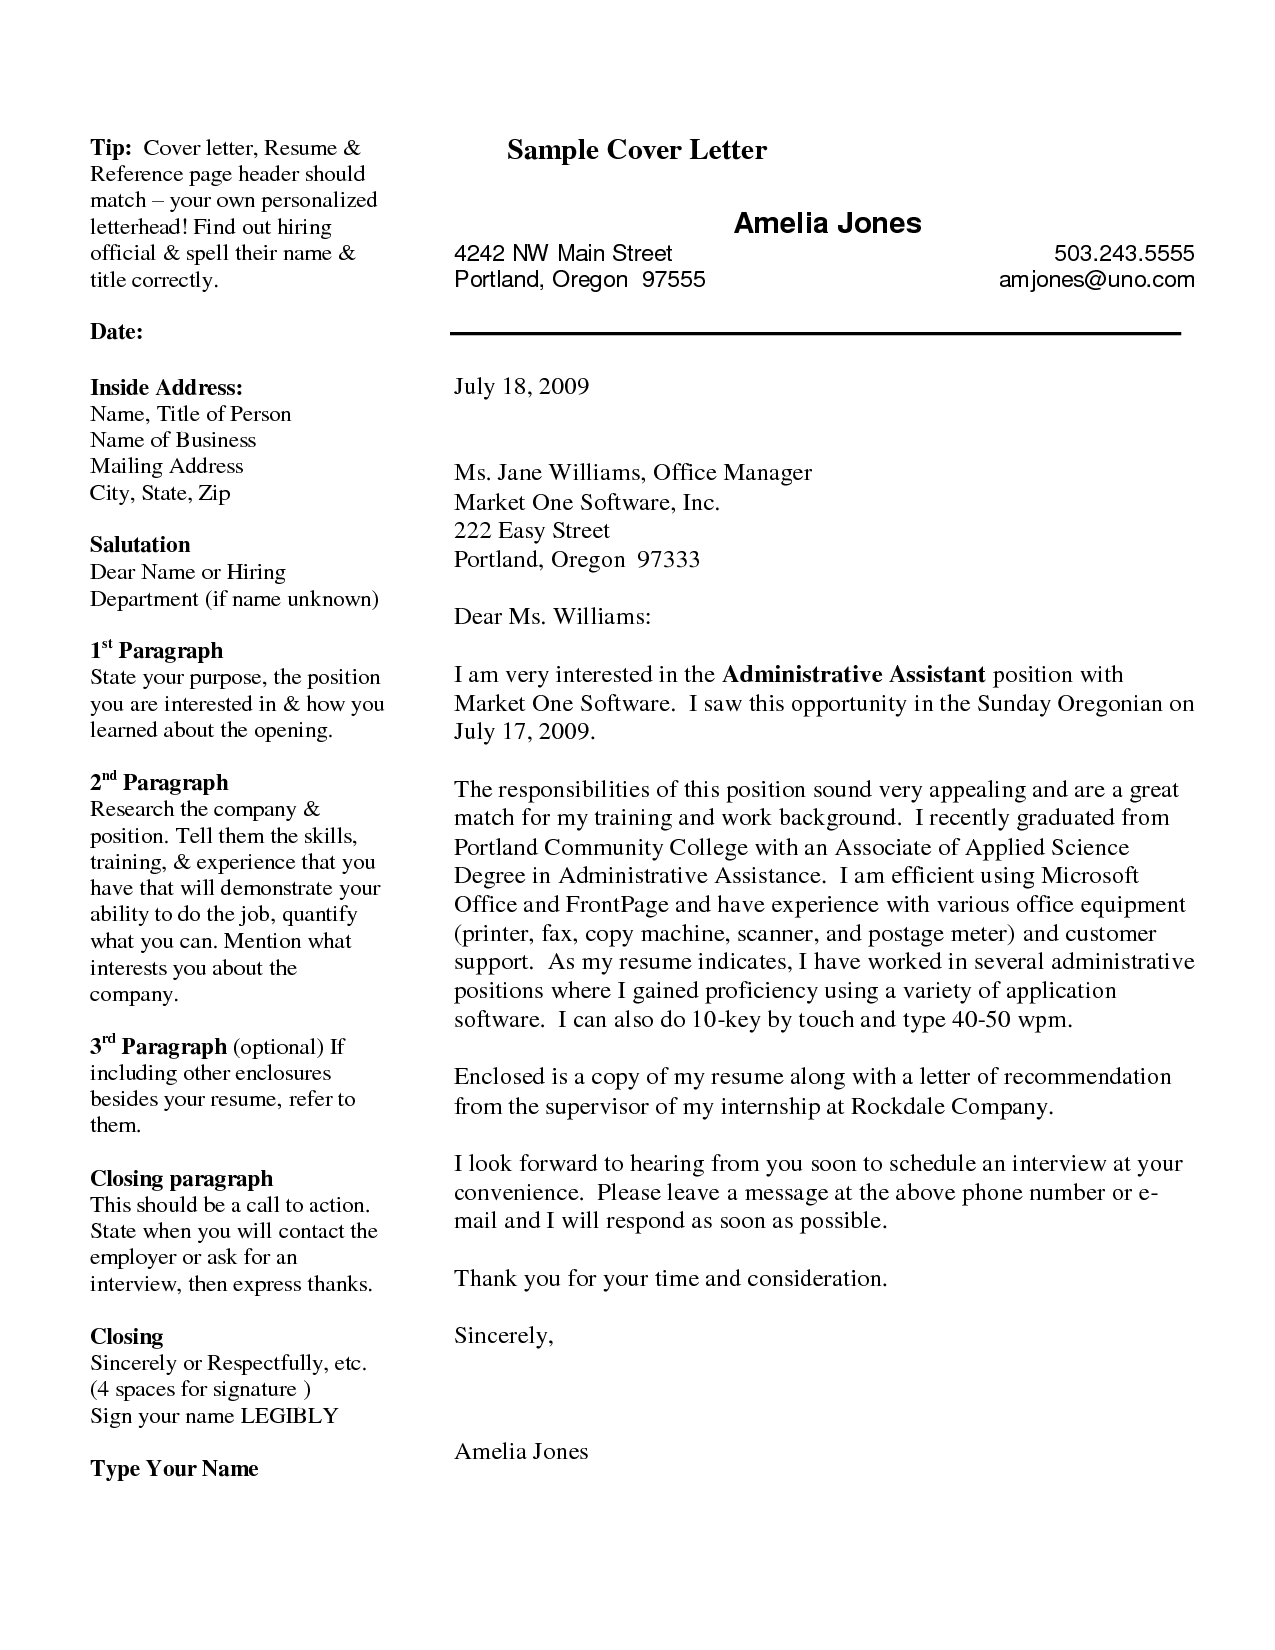 Resume With References Sample | Resume CV Cover Letter